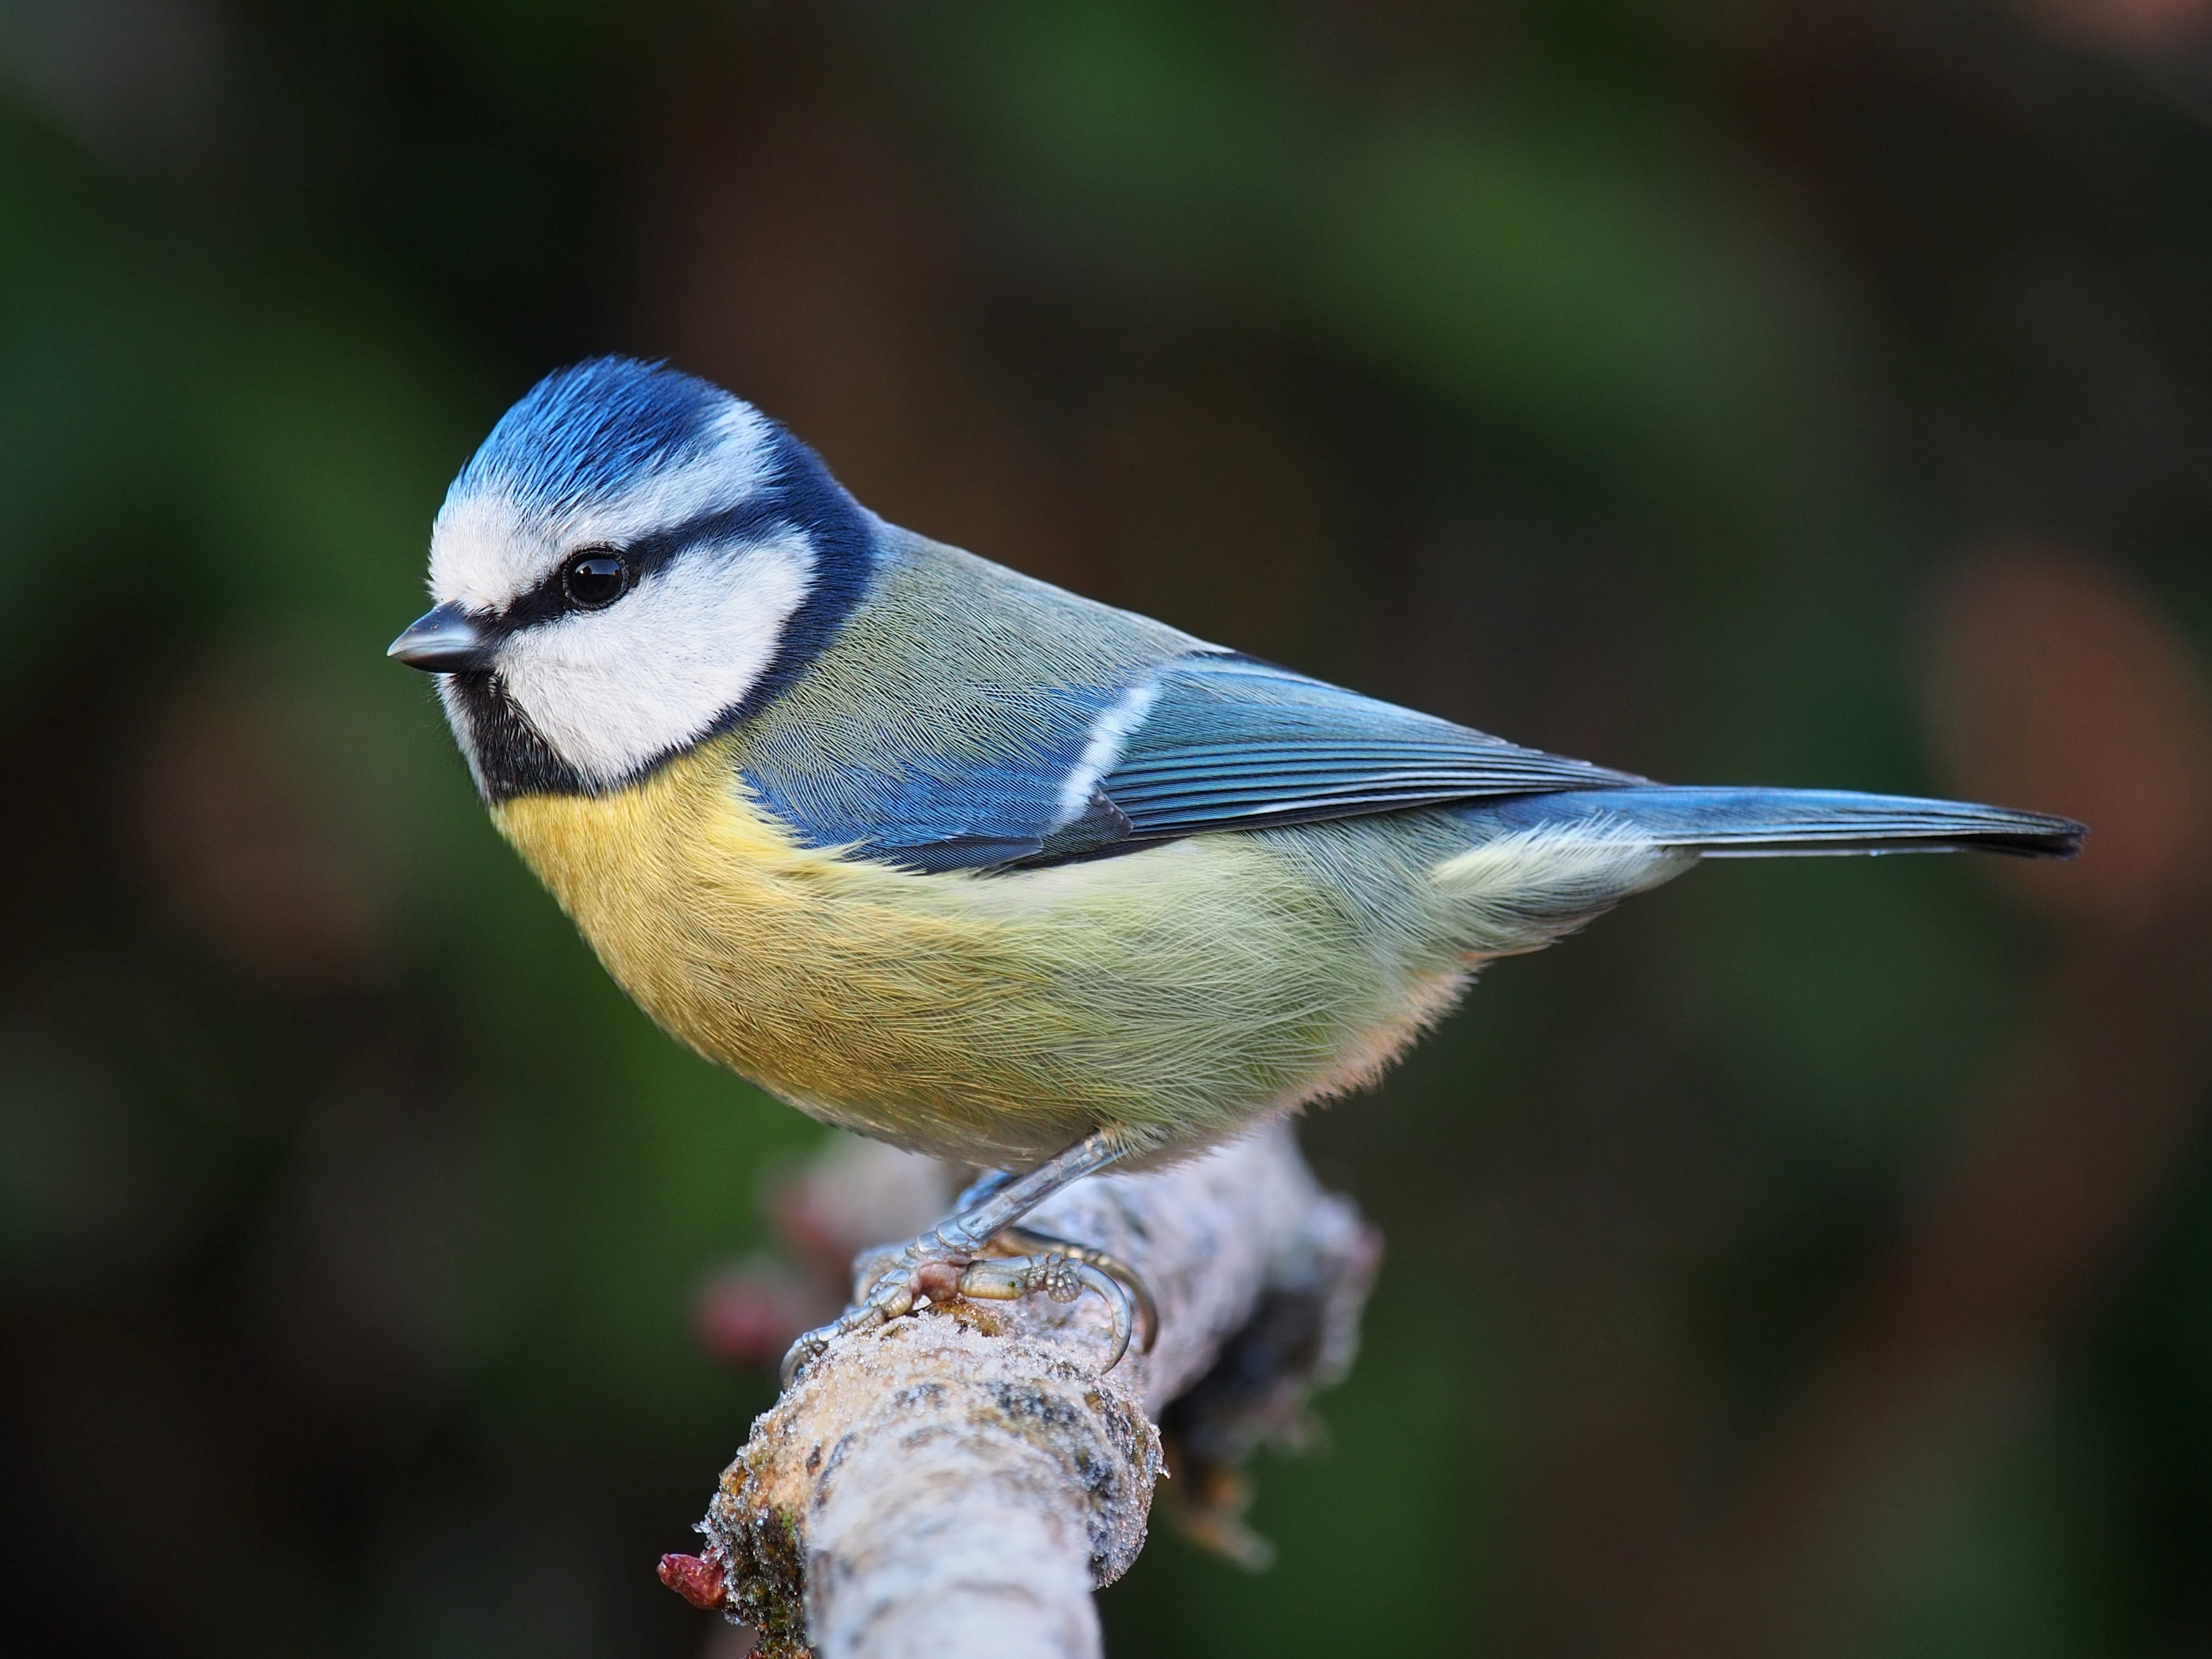 Know your birdsong! Click through our quick guide to the calls of